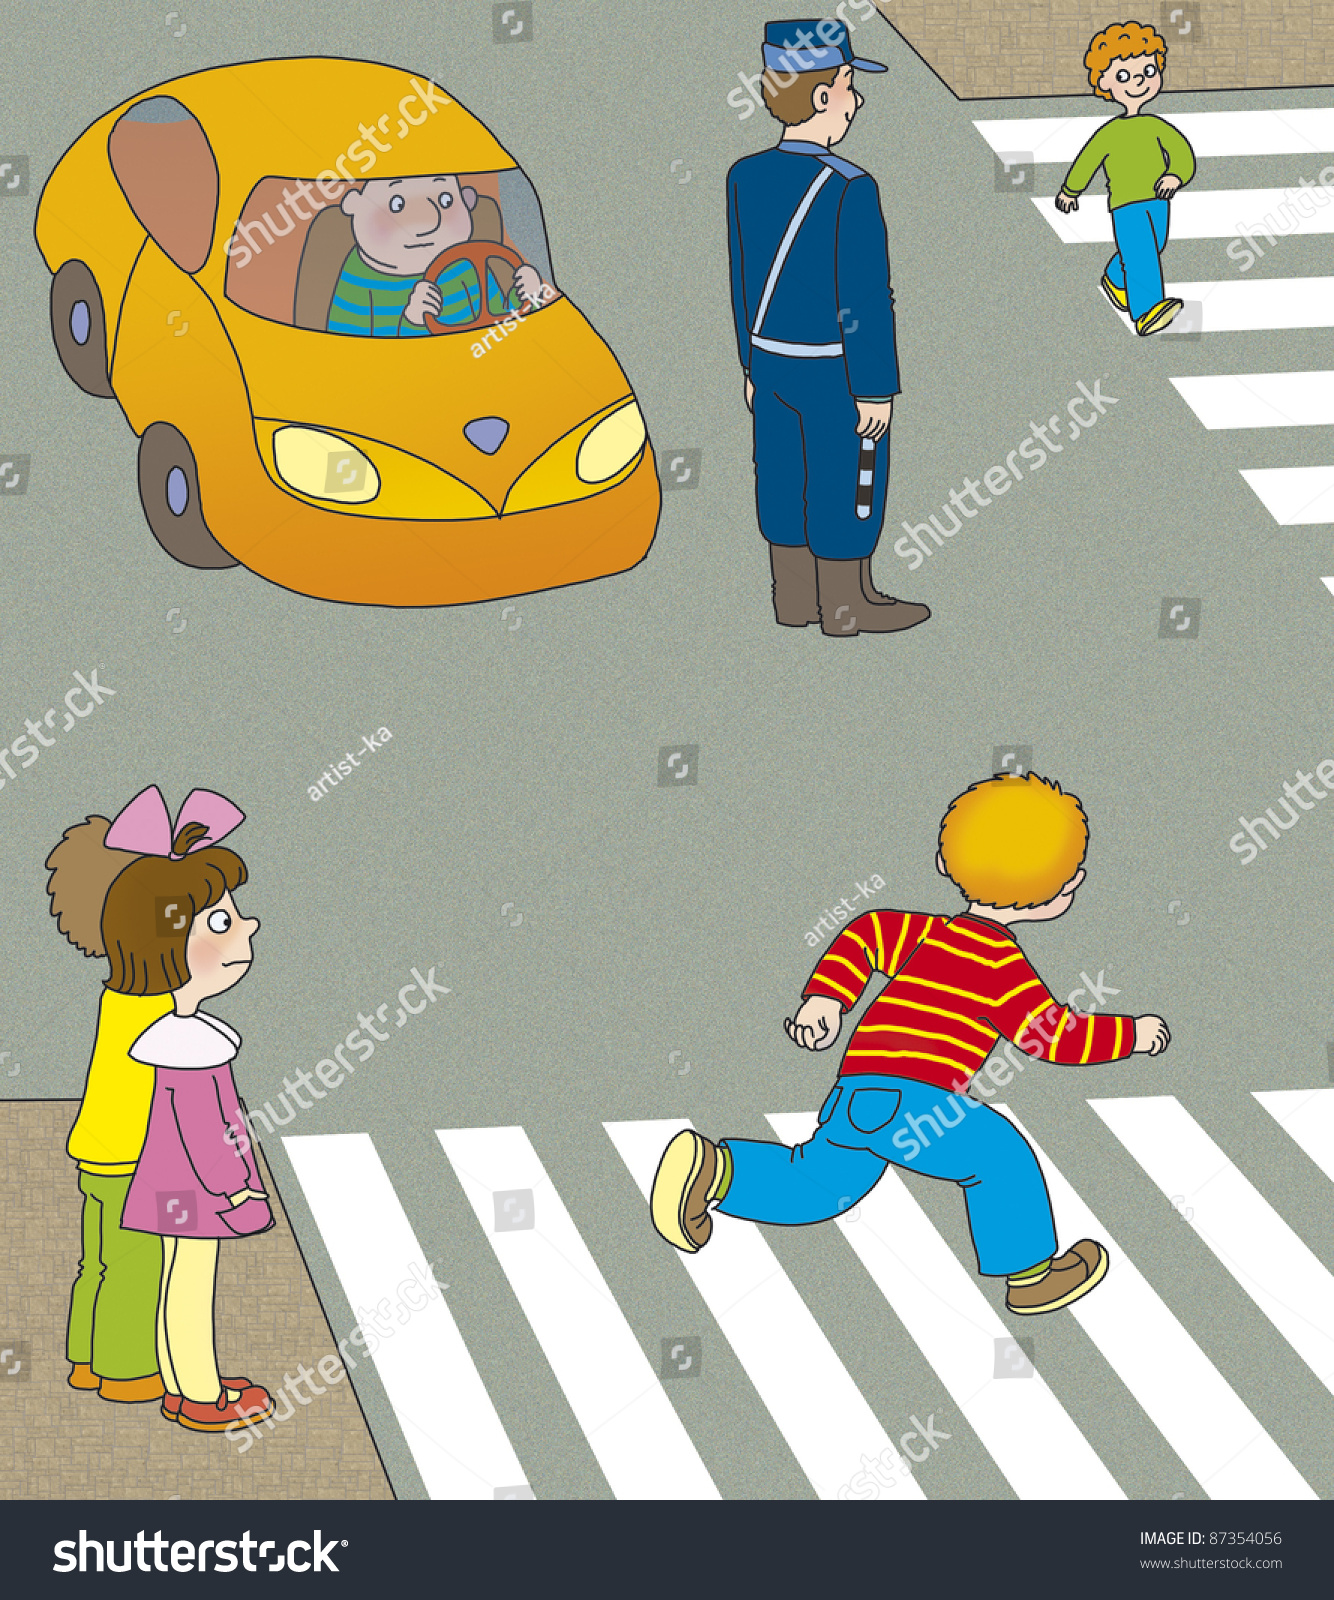 hight resolution of boy runs across the road at a pedestrian crossing in front of the machine